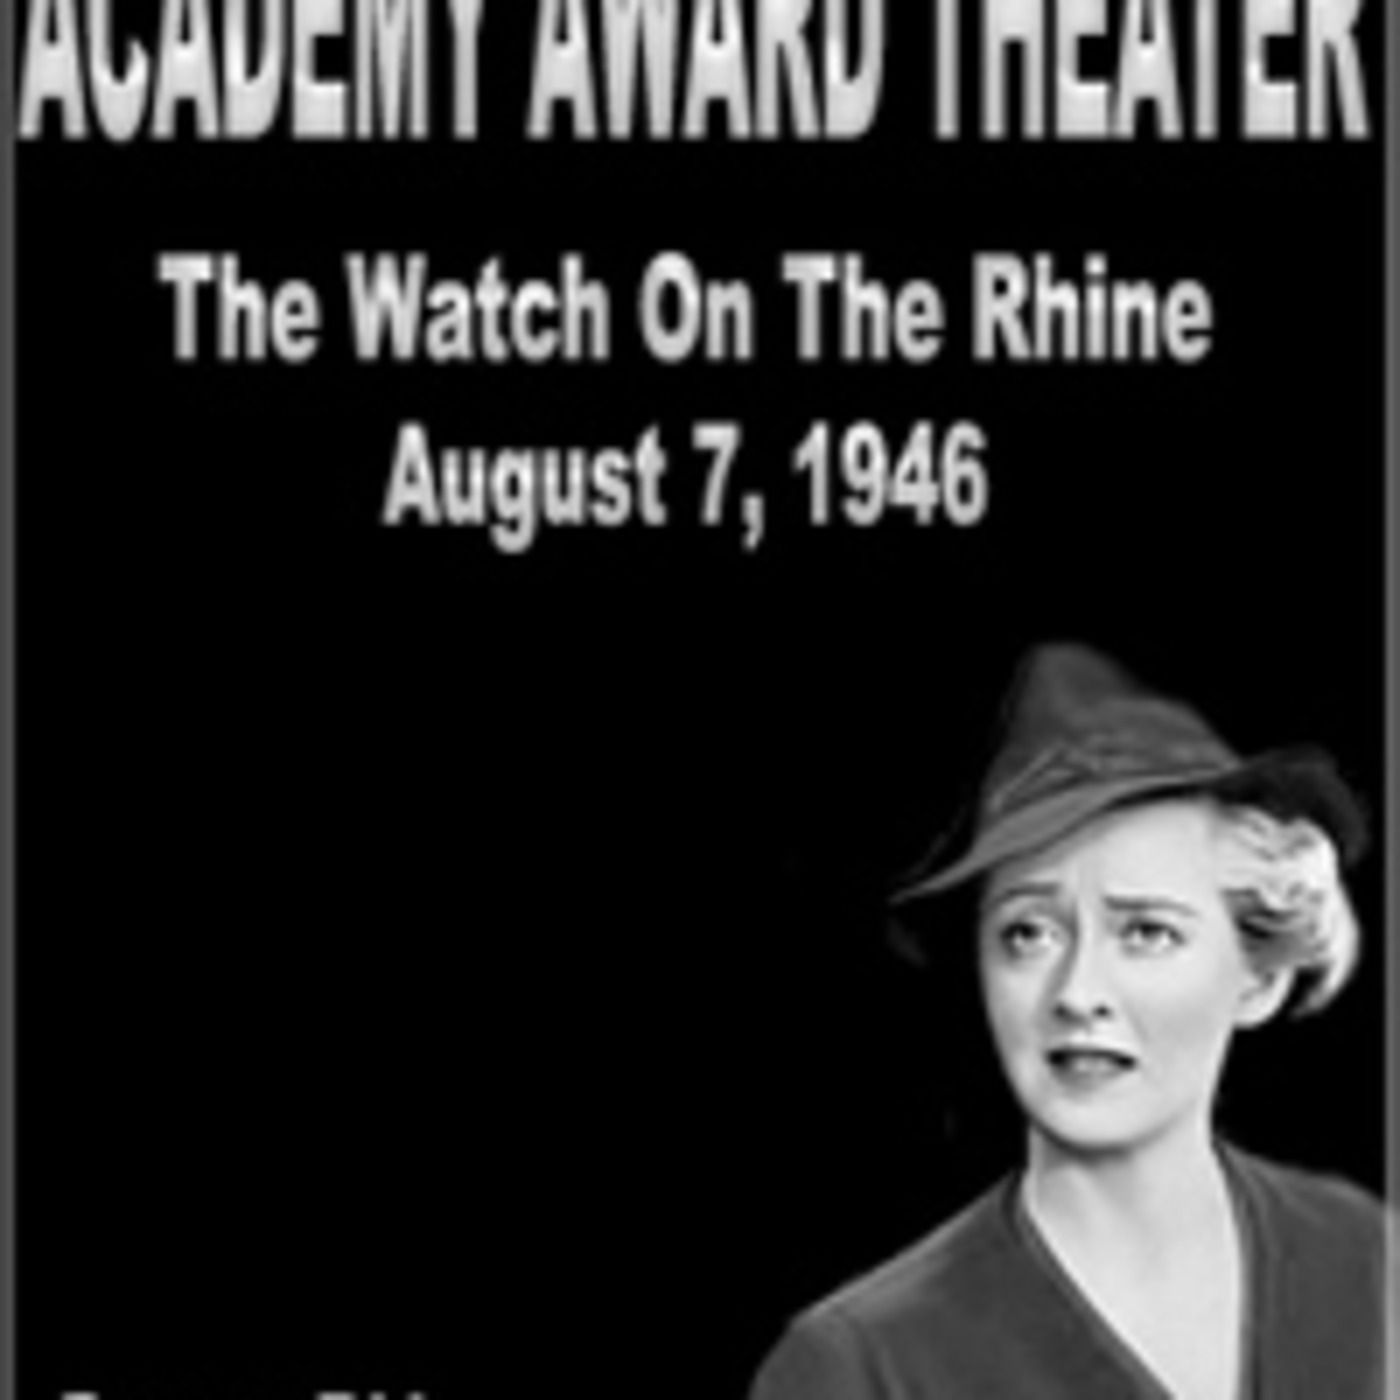 Academy Award Theater - The Watch On The Rhine (08-07-46)